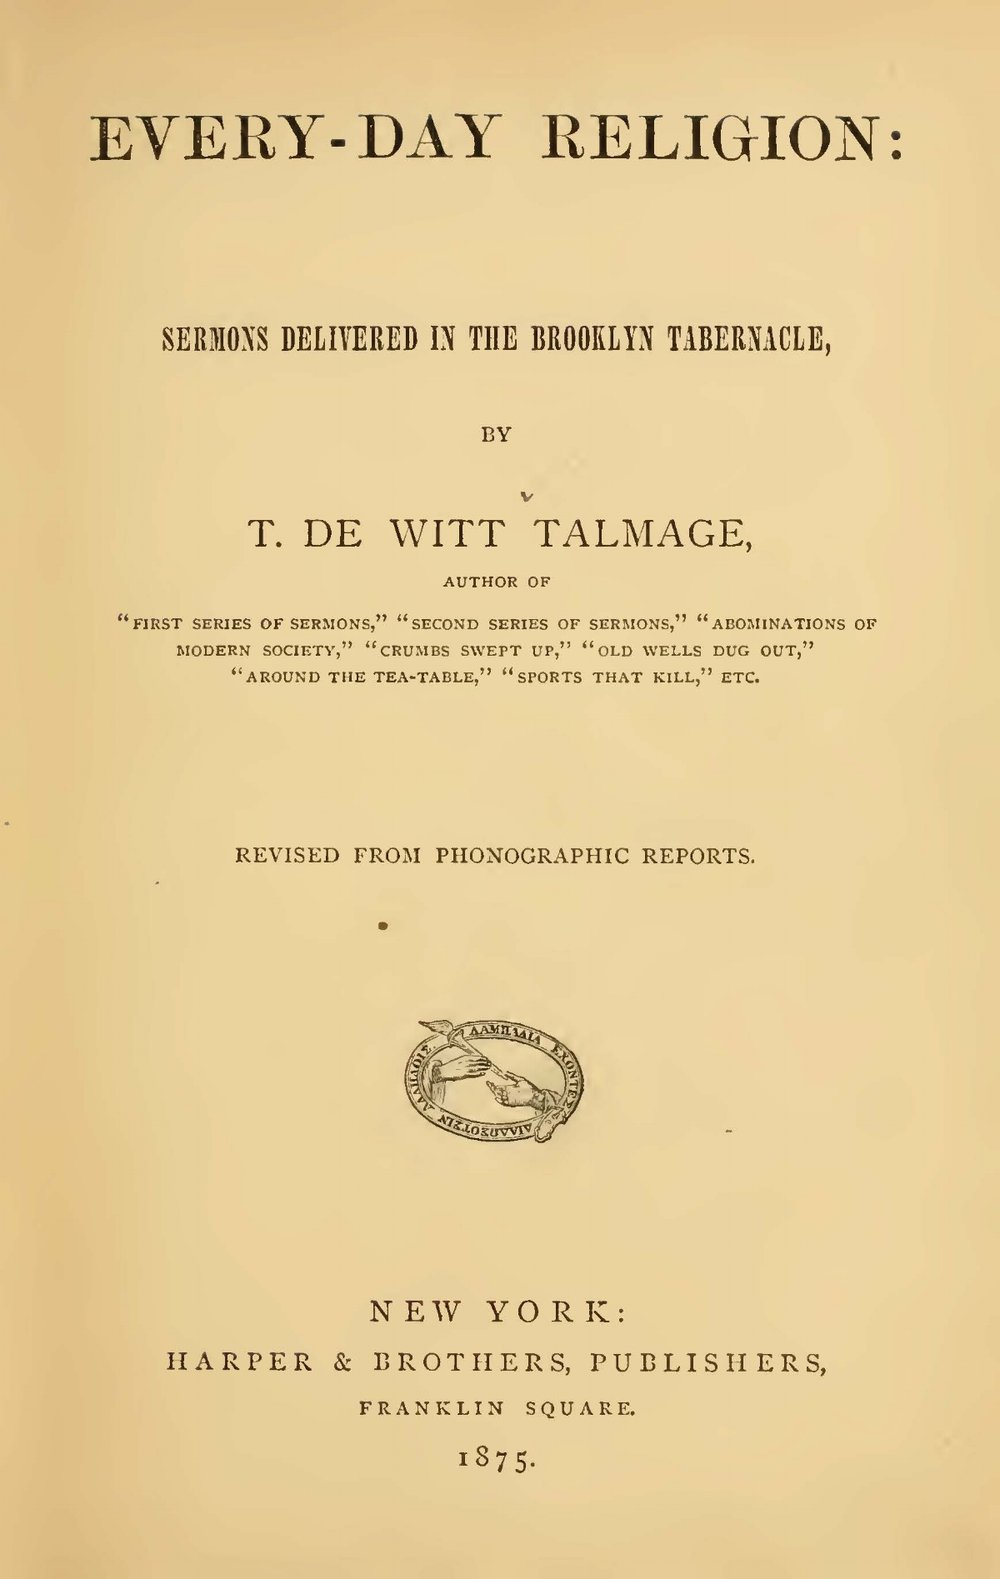 Talmage, Thomas De Witt, Every-Day Religion Title Page.jpg